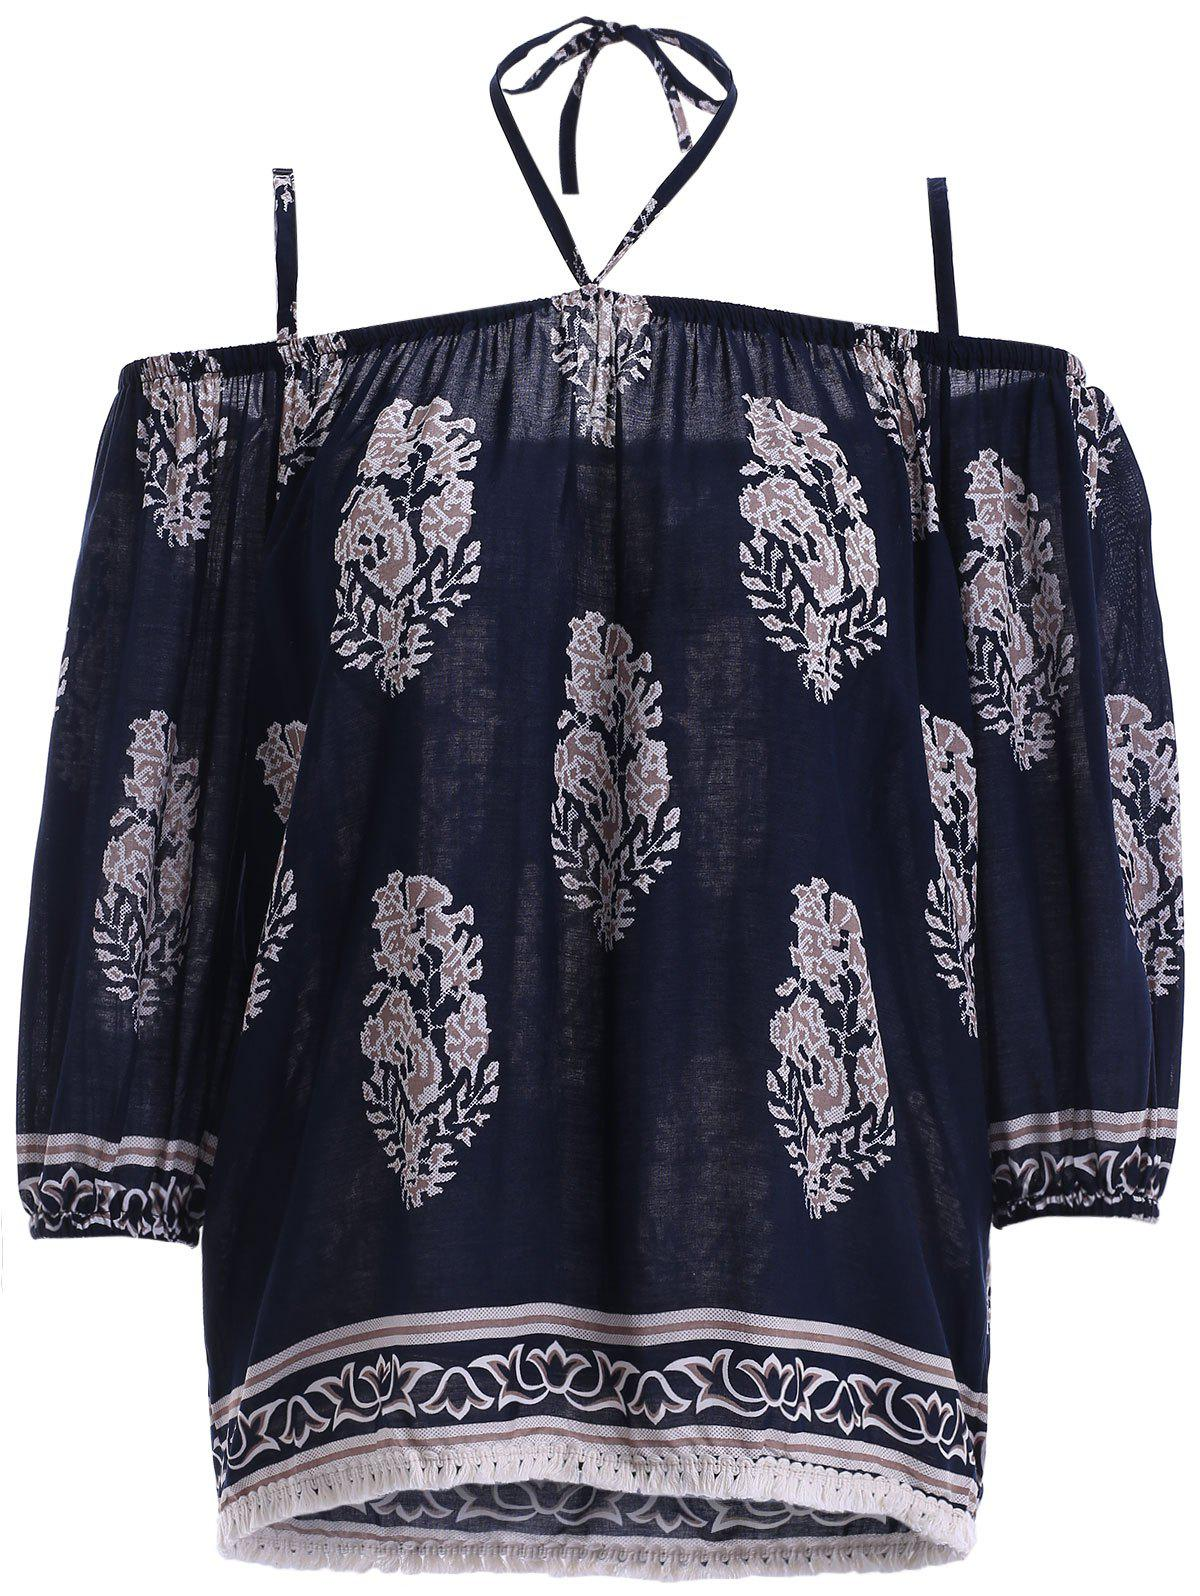 Ethnic Style Women's Spaghetti Strap Tie Fringe Print Blouse - PURPLISH BLUE XL